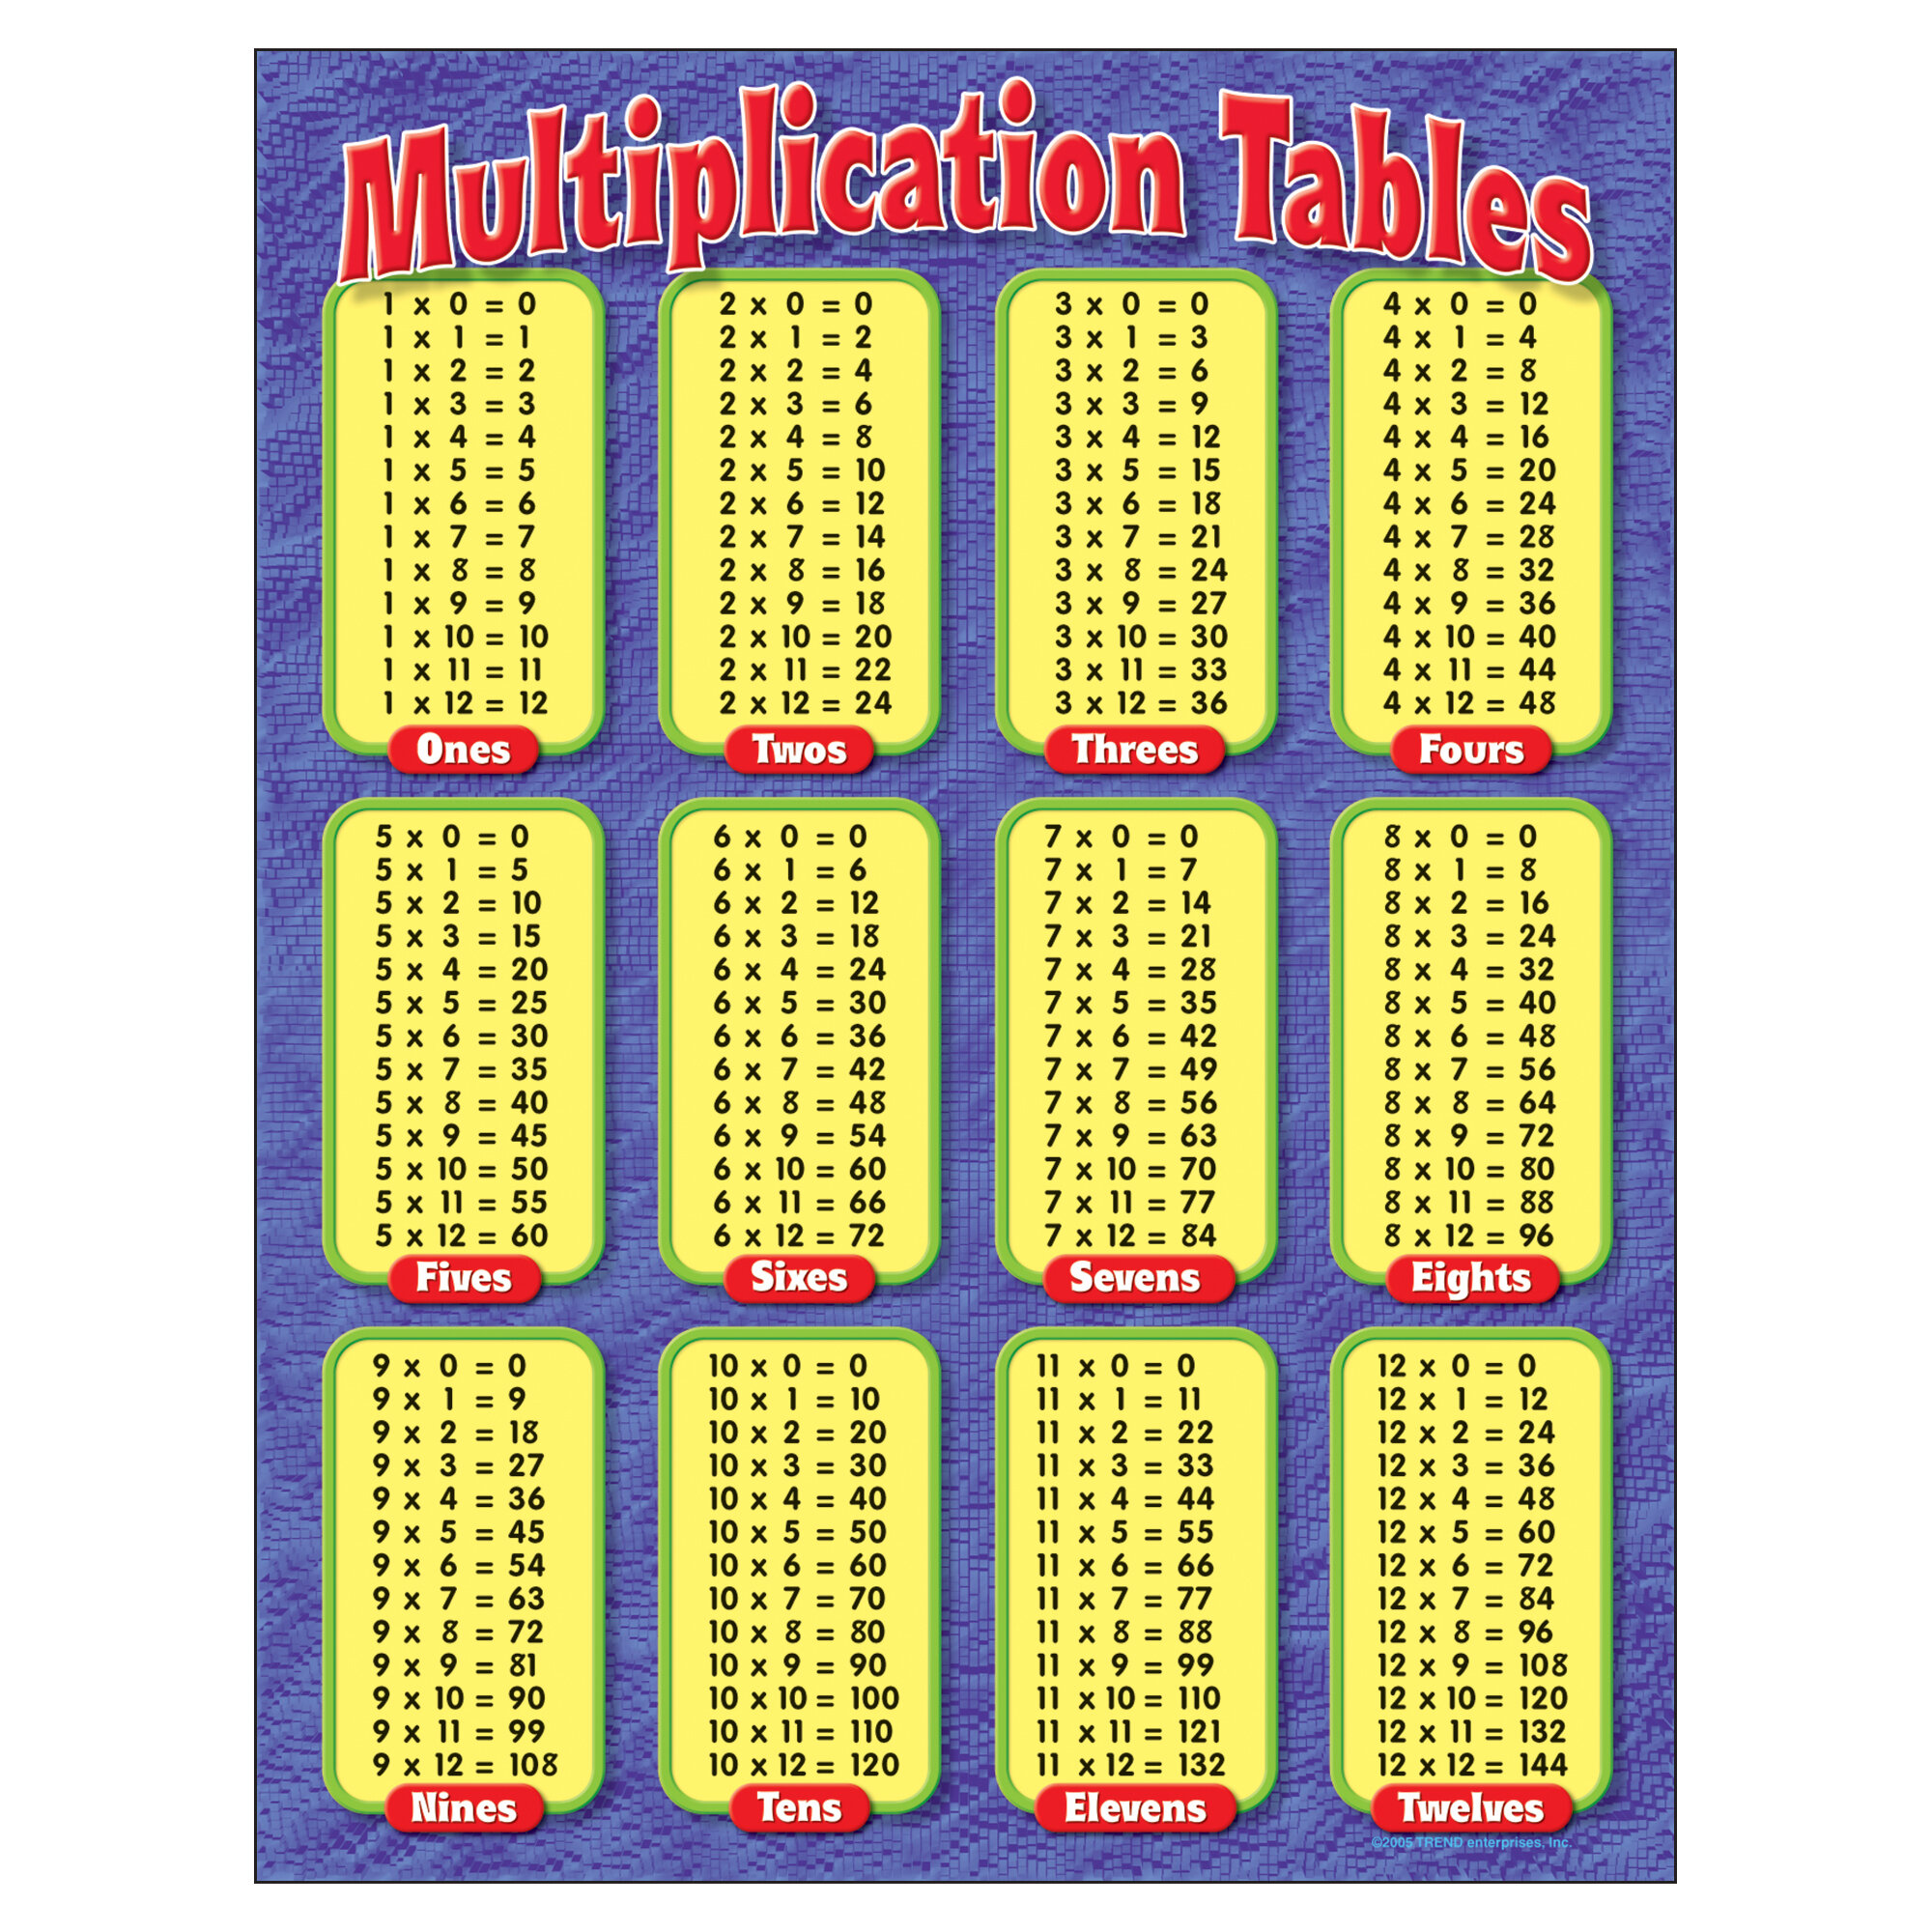 Multiplication table 25x25 pictures to pin on pinterest multiplication table 25x25 chart nvjuhfo Gallery